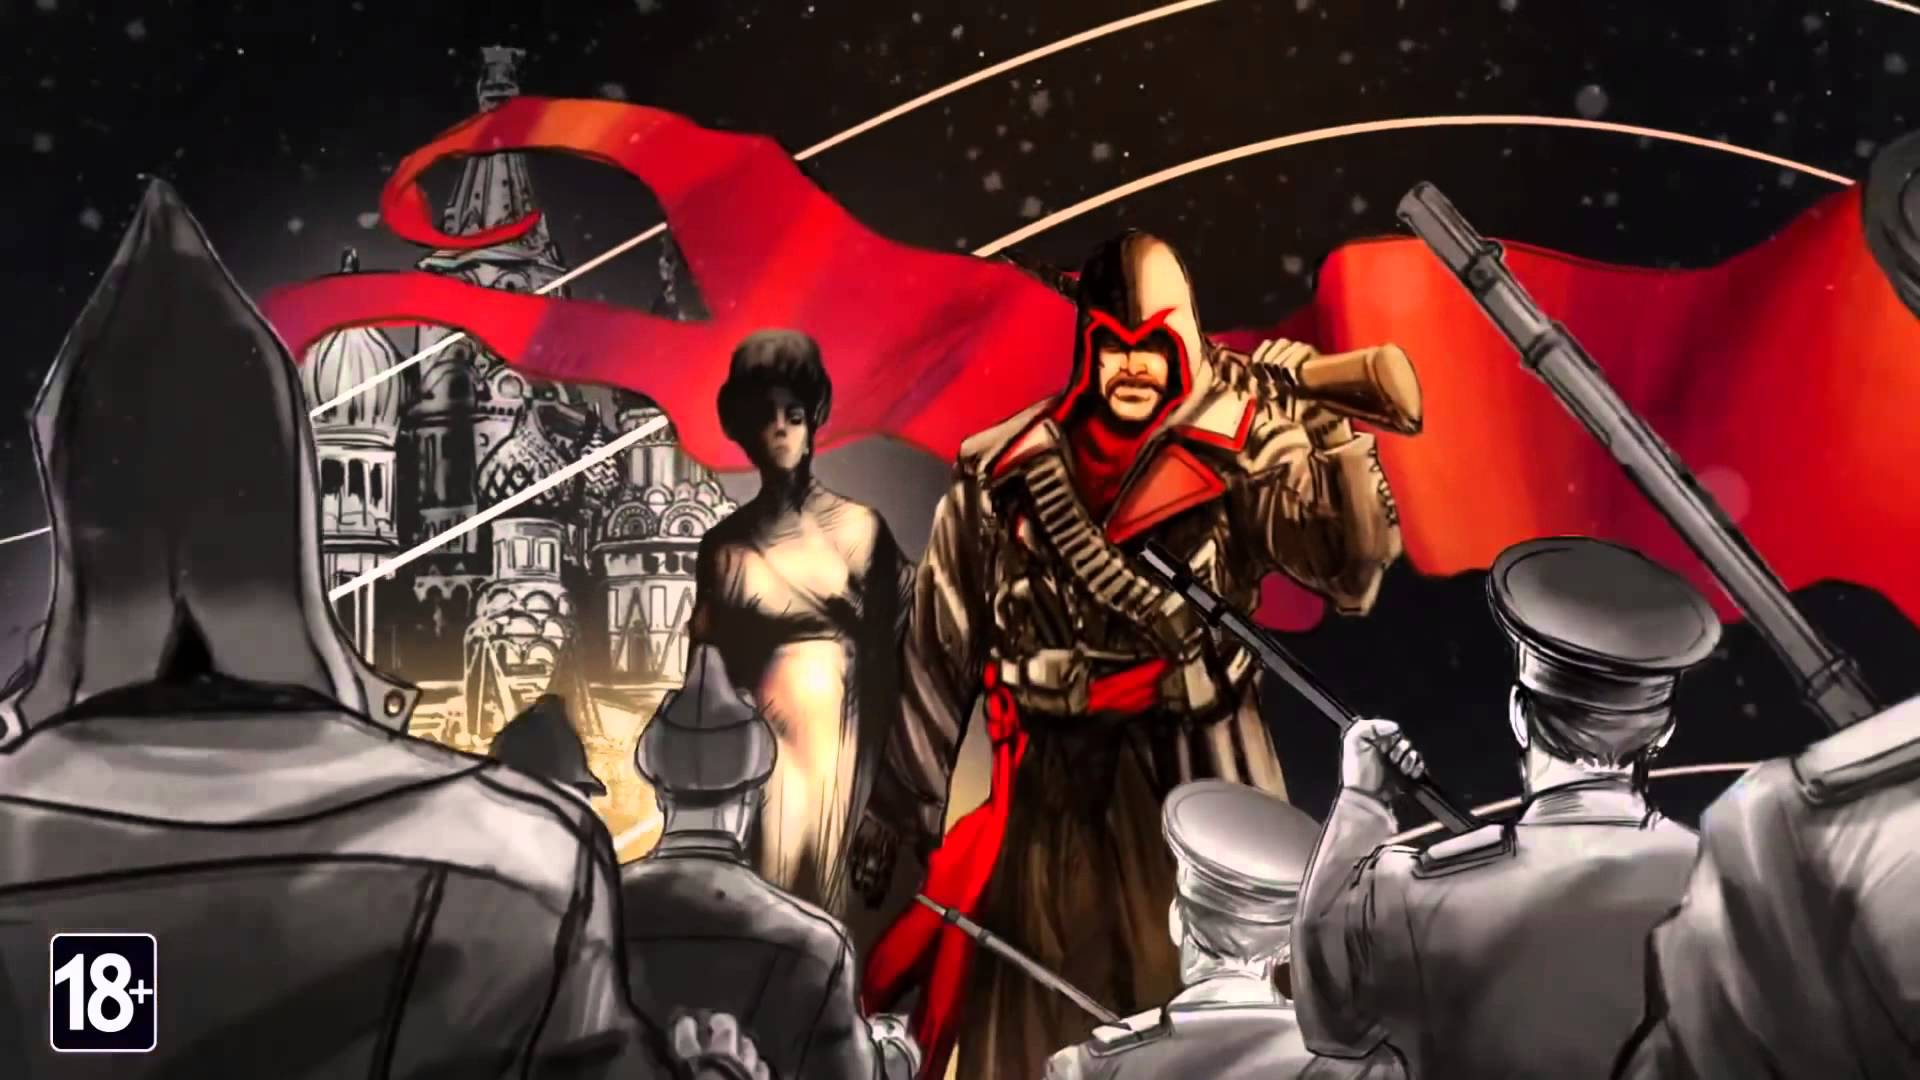 Assassin's Creed Chronicles: Russia - Videogiocare.it